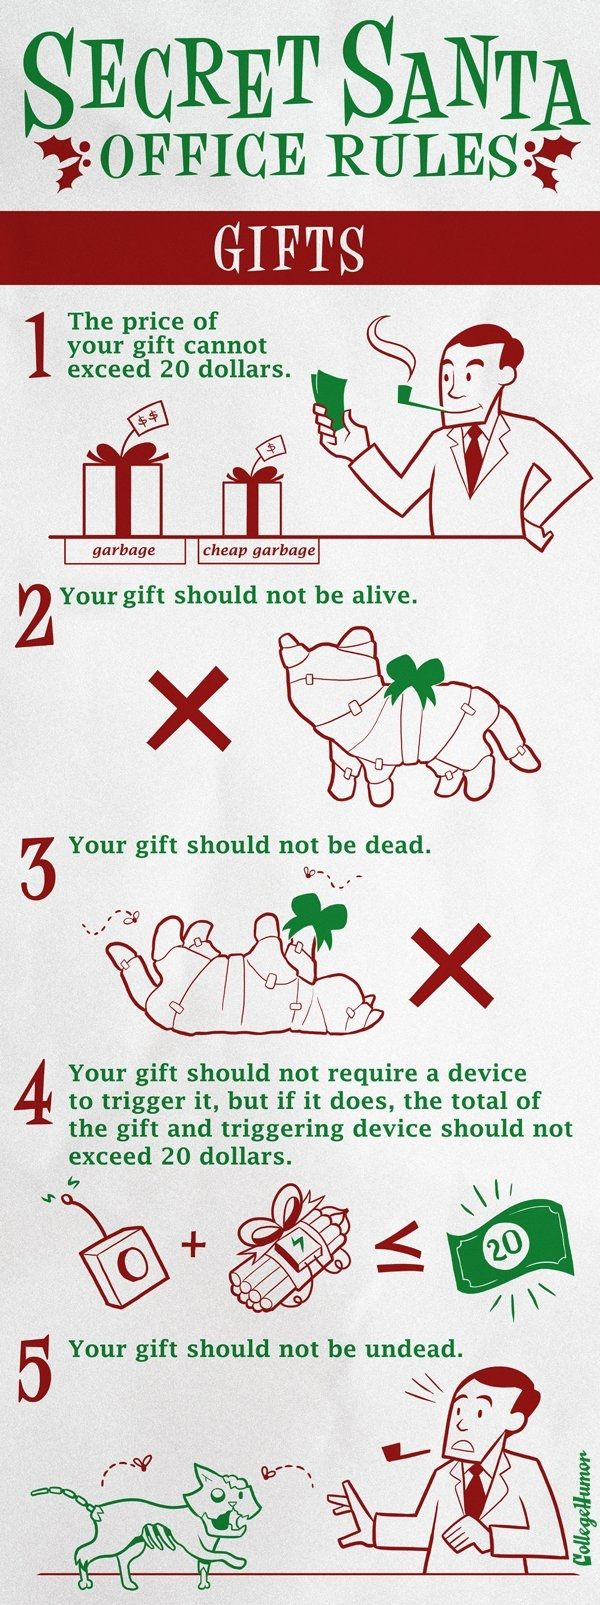 17 best images about secret santa christmas gift secret santa office rules haha they told me i m hosting the